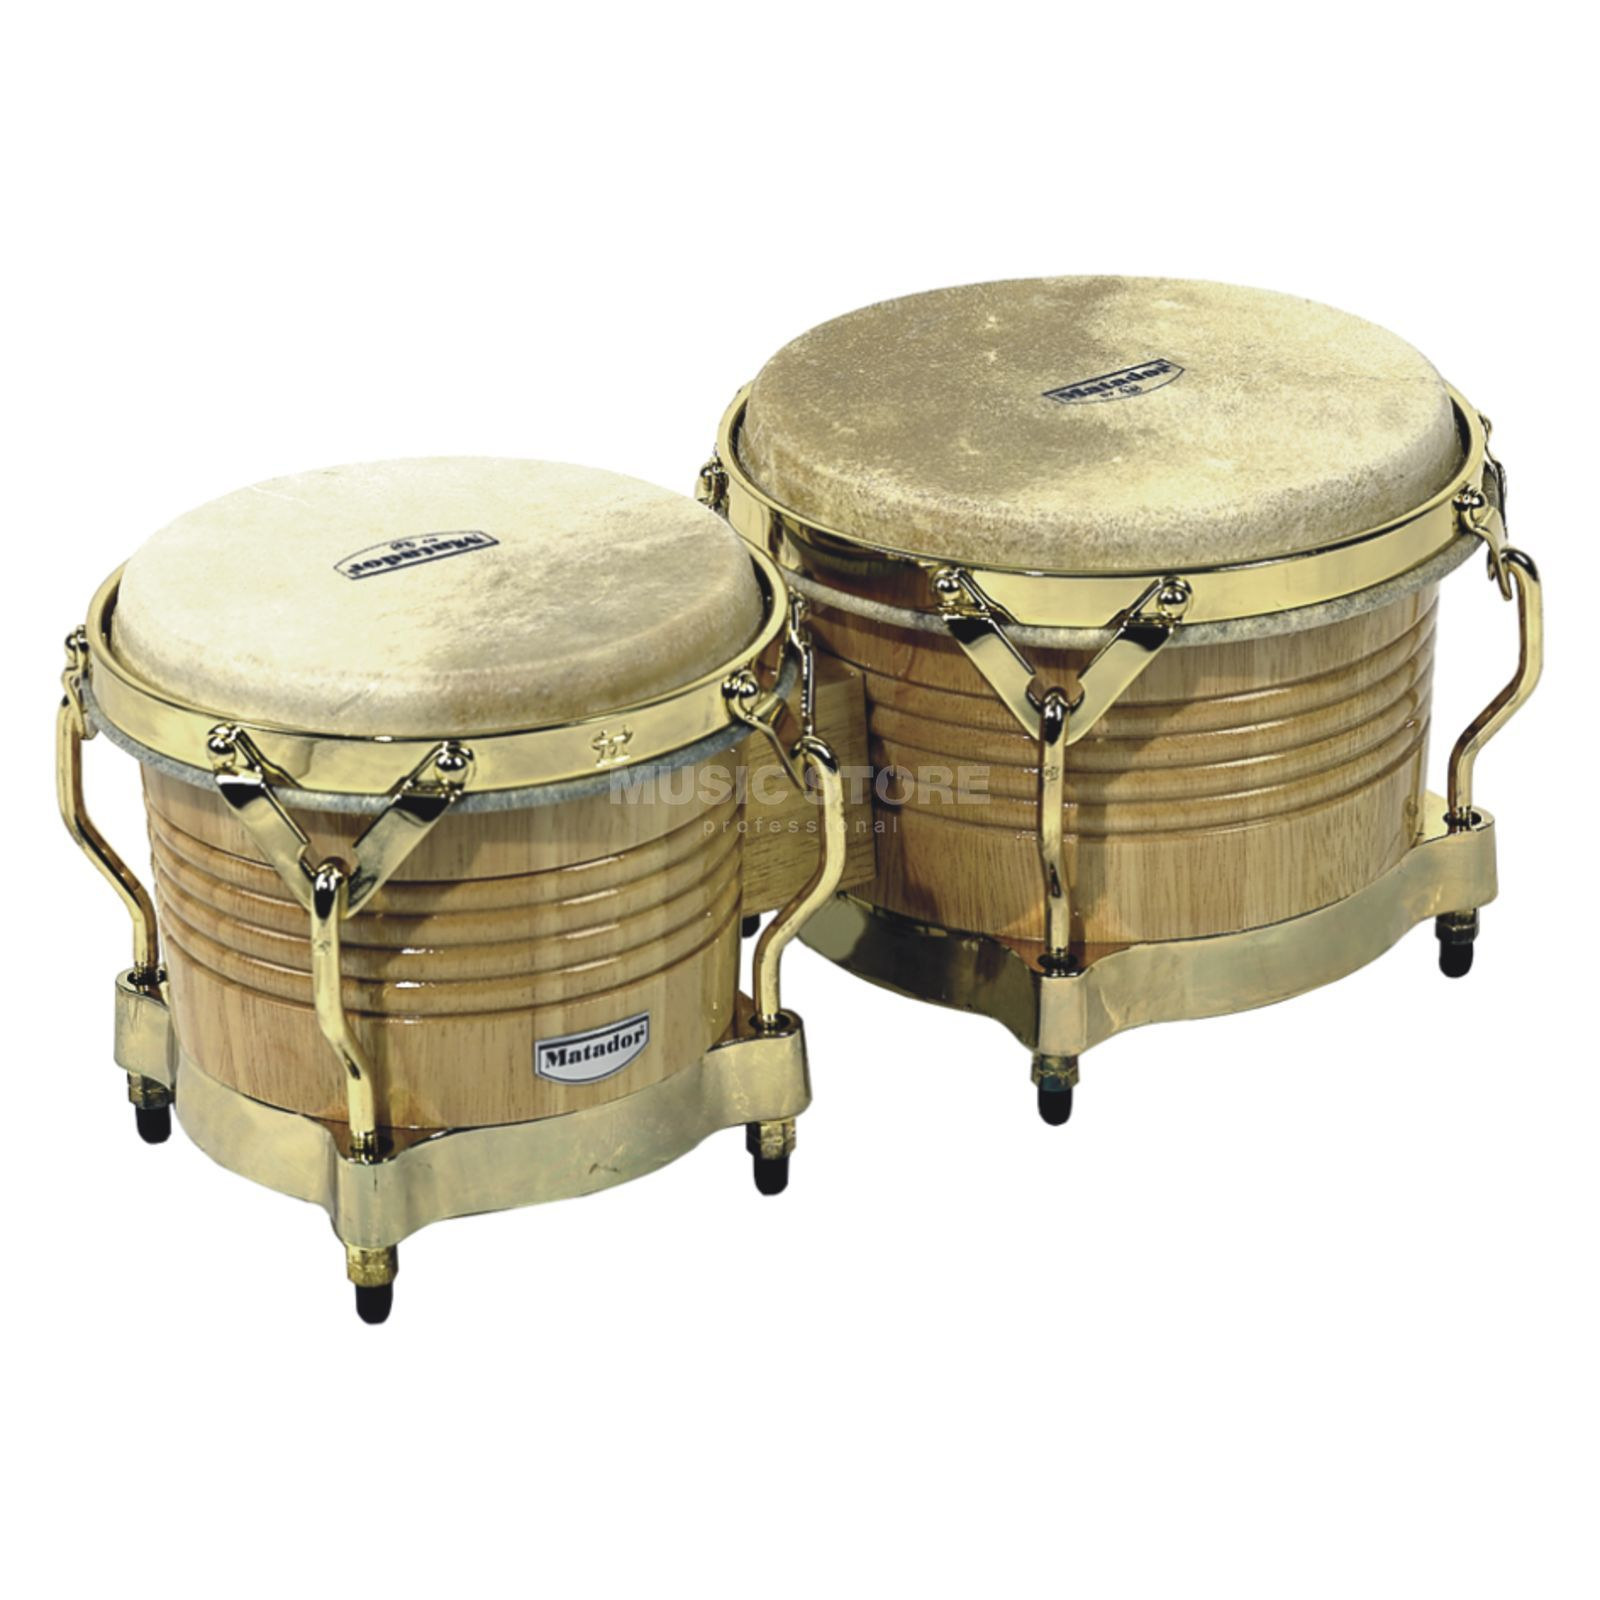 "Latin Percussion Matador Bongos M201-AW, 7 1/4""+ 8 5/8"", Natural Produktbild"